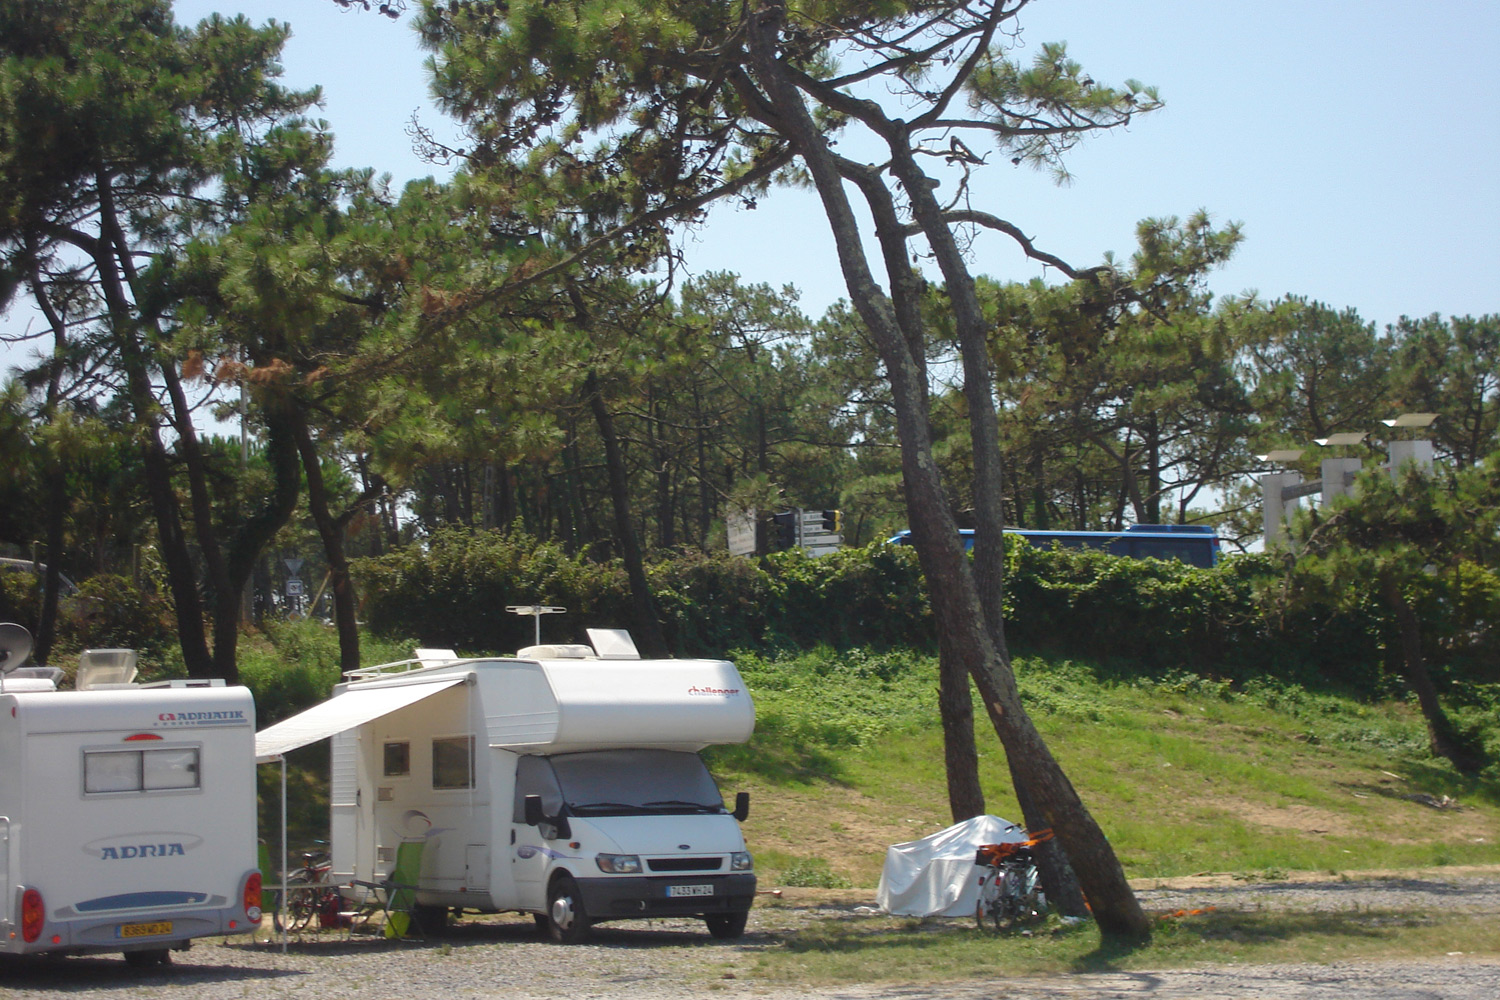 Aire camping car anglet